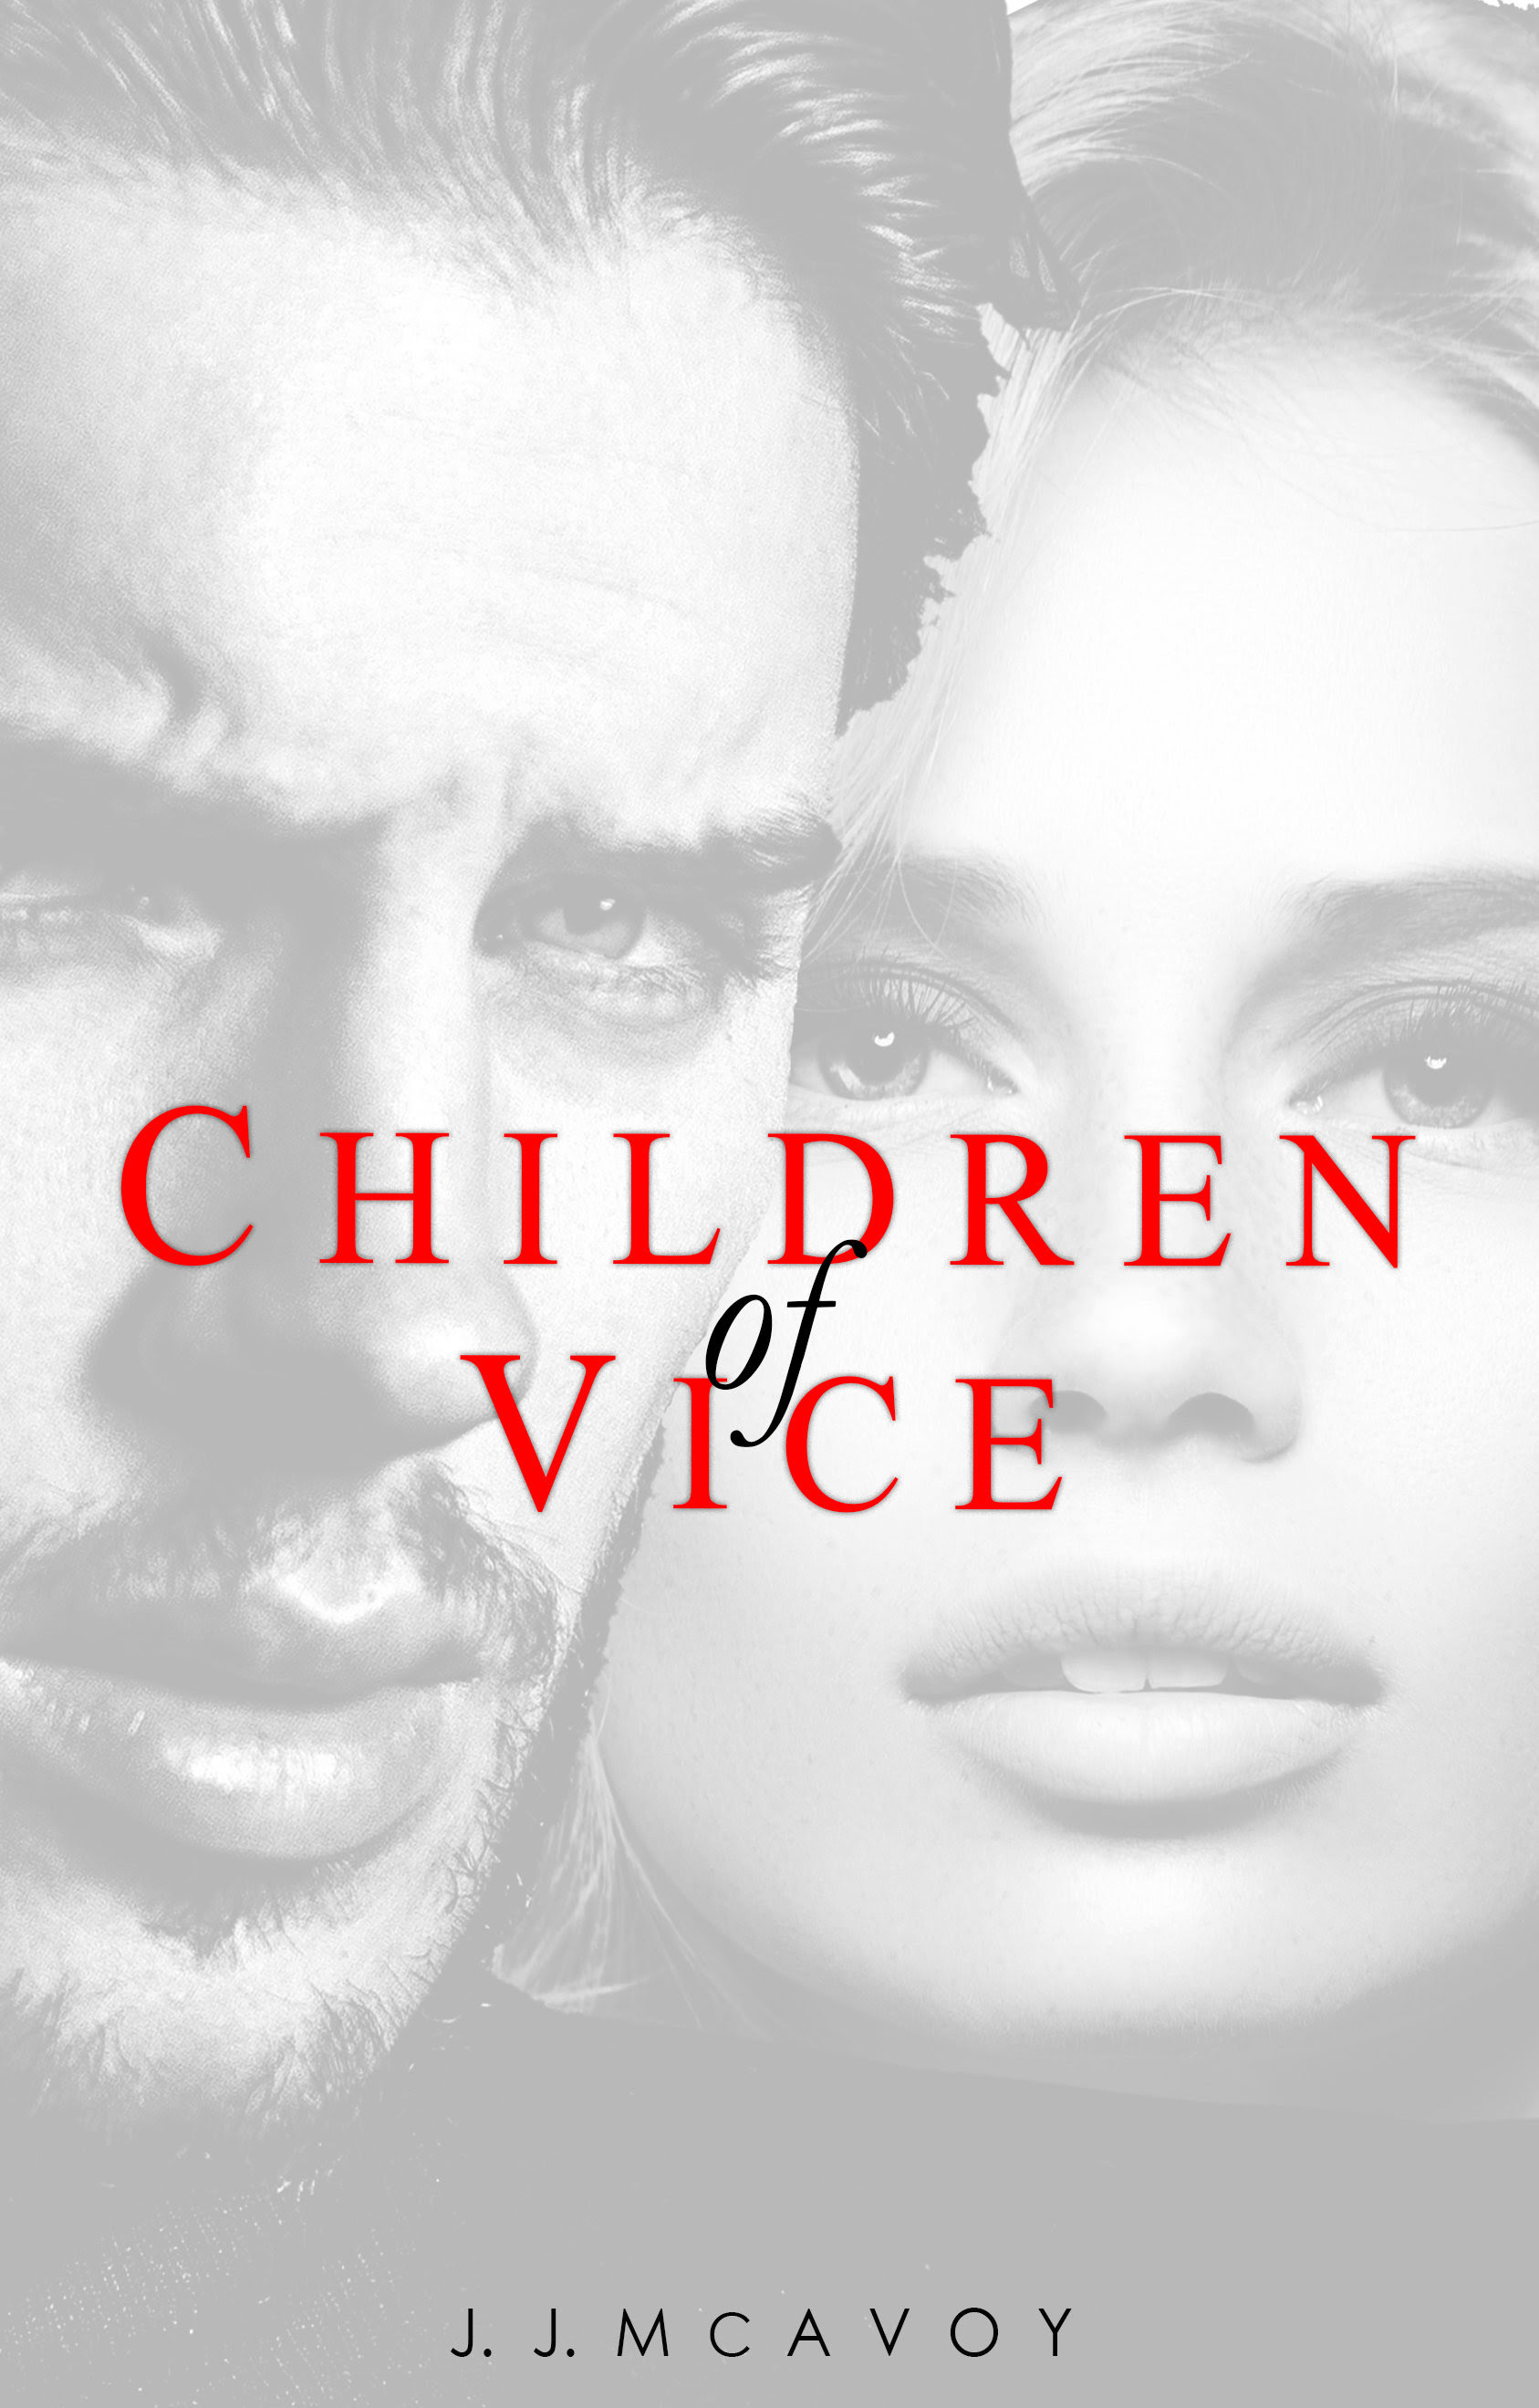 J. J. McAvoy - Children of Vice 1 - Children of Vice